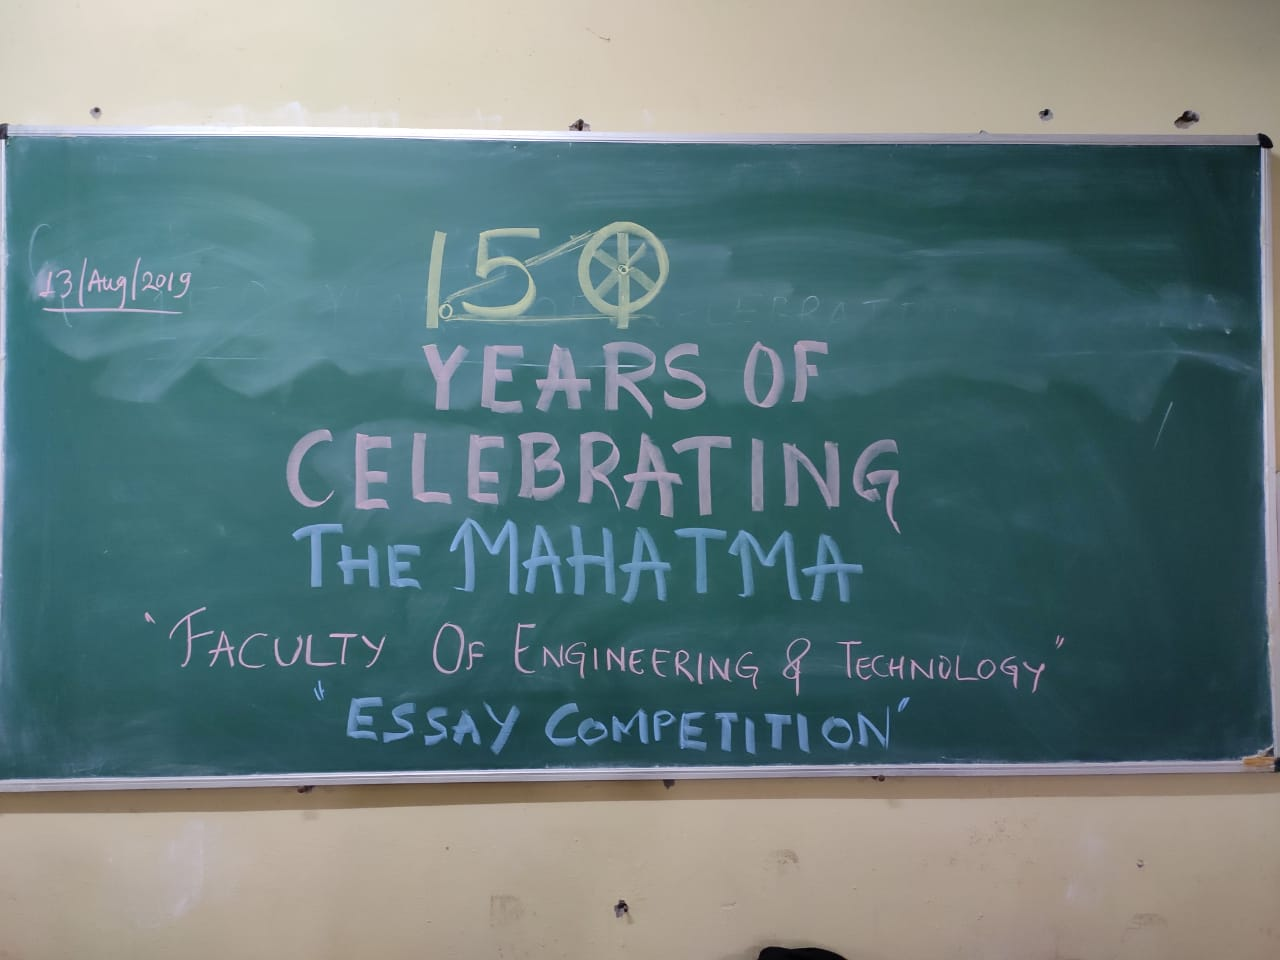 Essay Writing Contest on Gandhi 150(Mahatma)